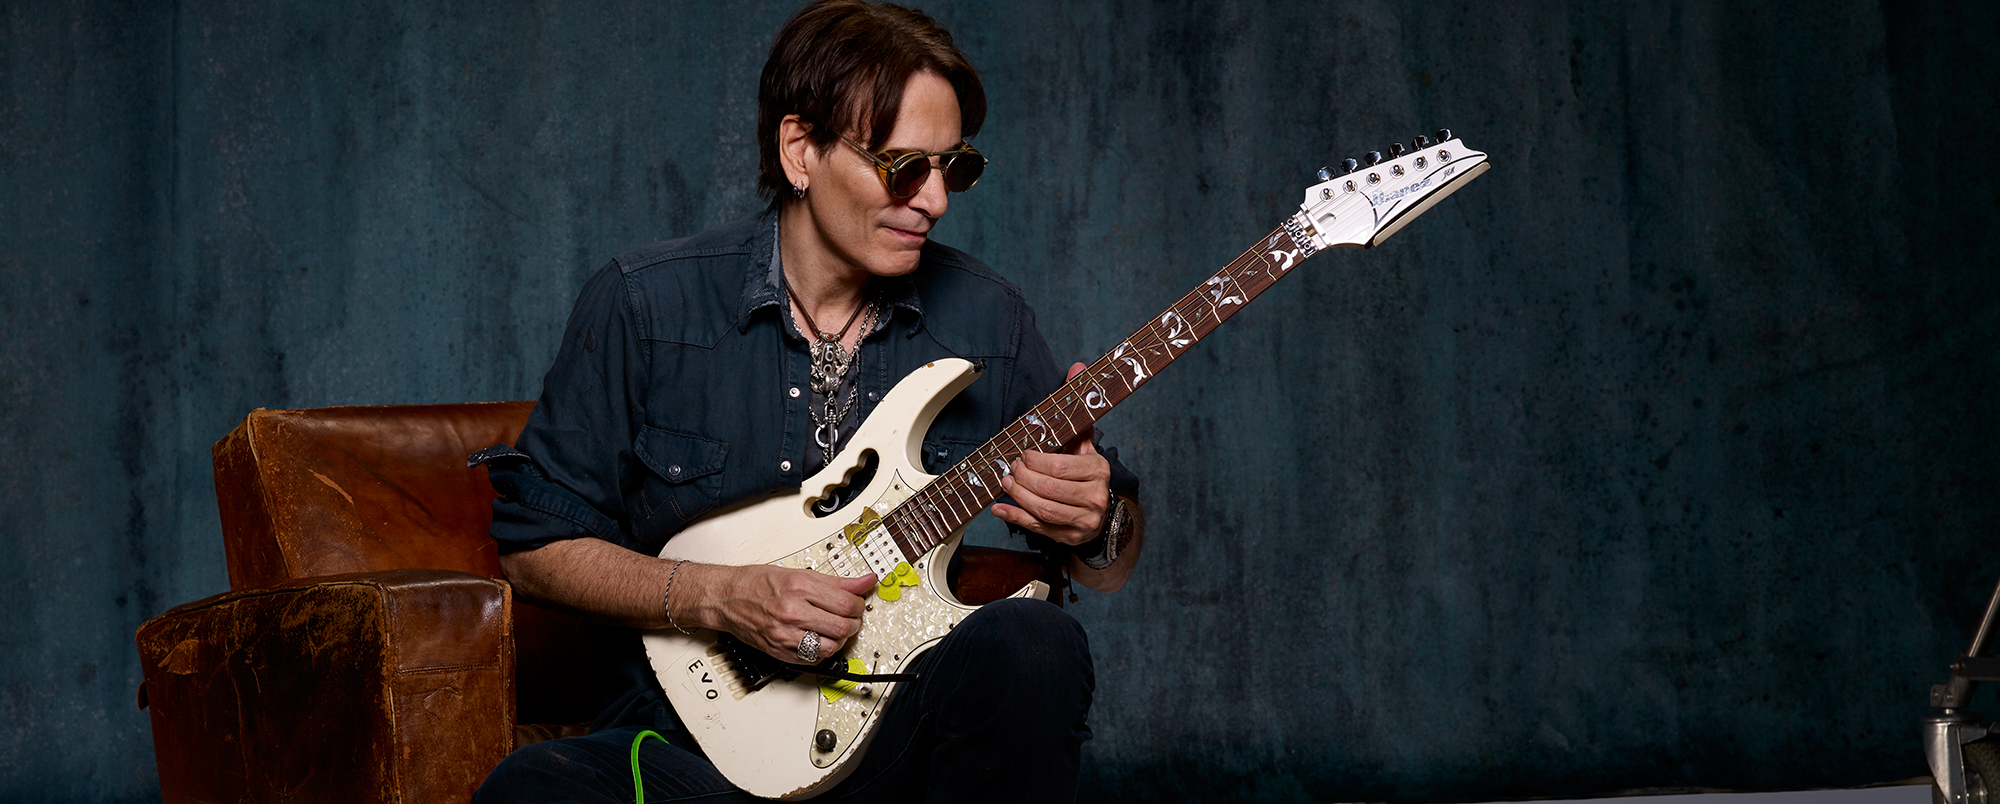 The Basics And Beyond An In Depth Guitar Lesson By Steve Vai